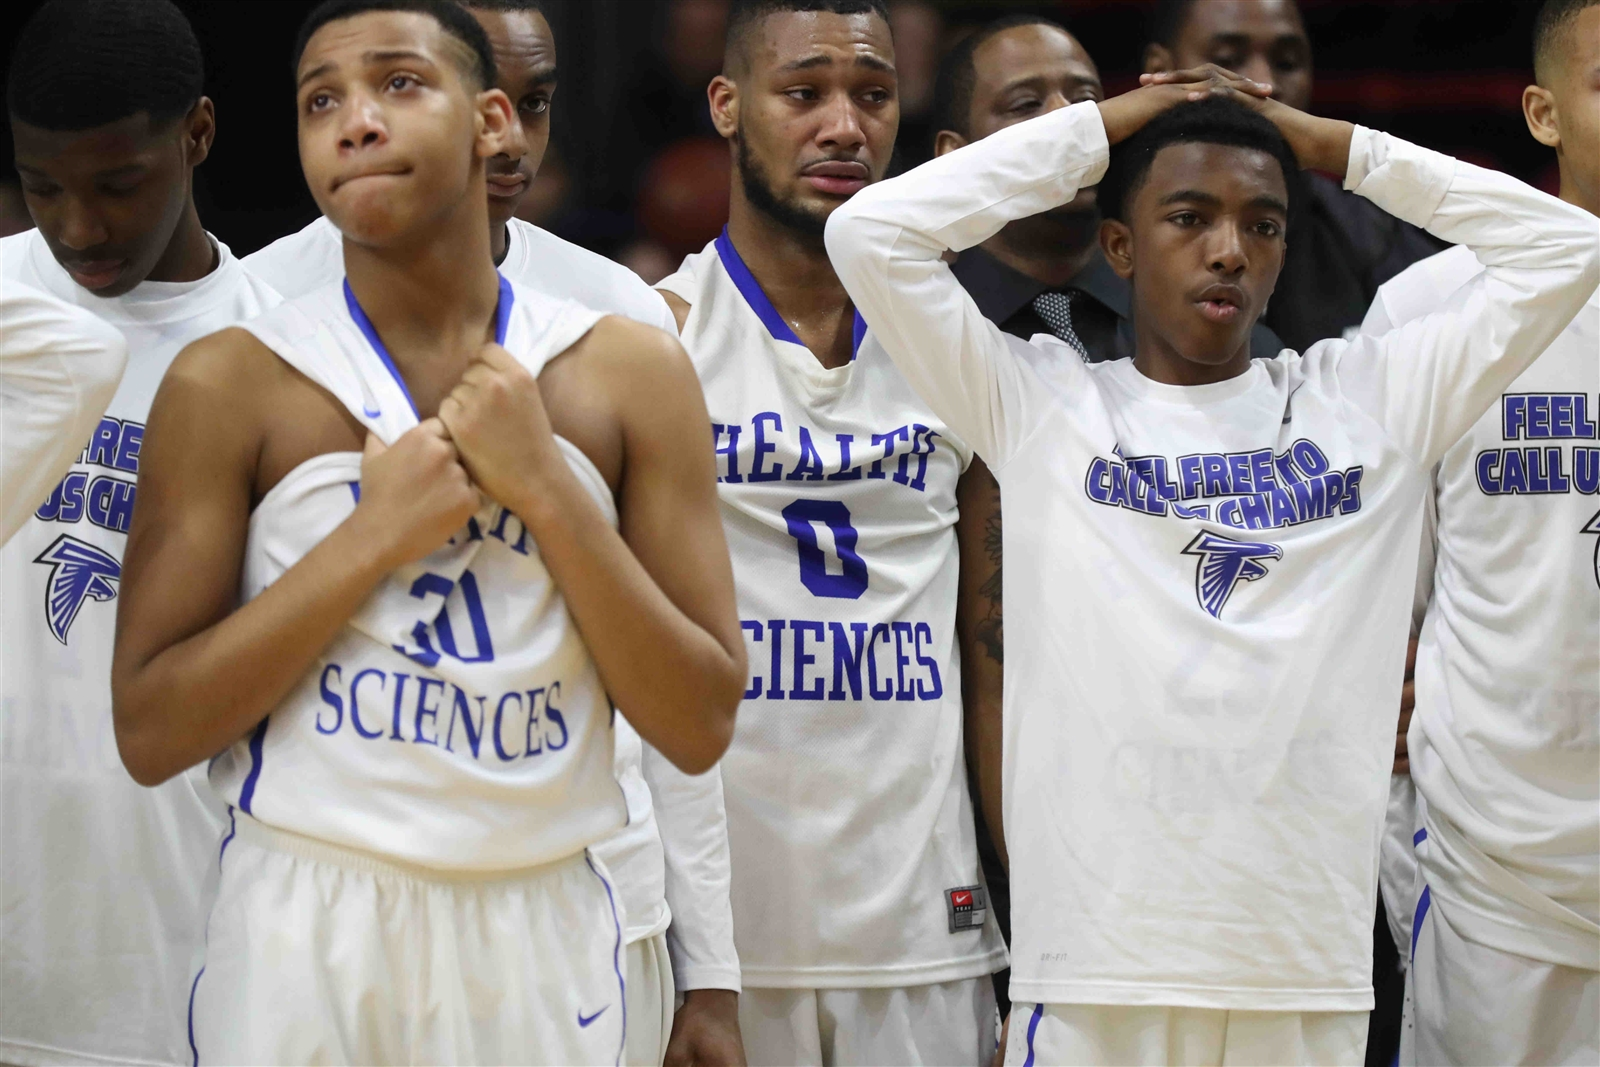 Health Sciences team was very upset after losing 67-55 to  Canton in the the semifinals.